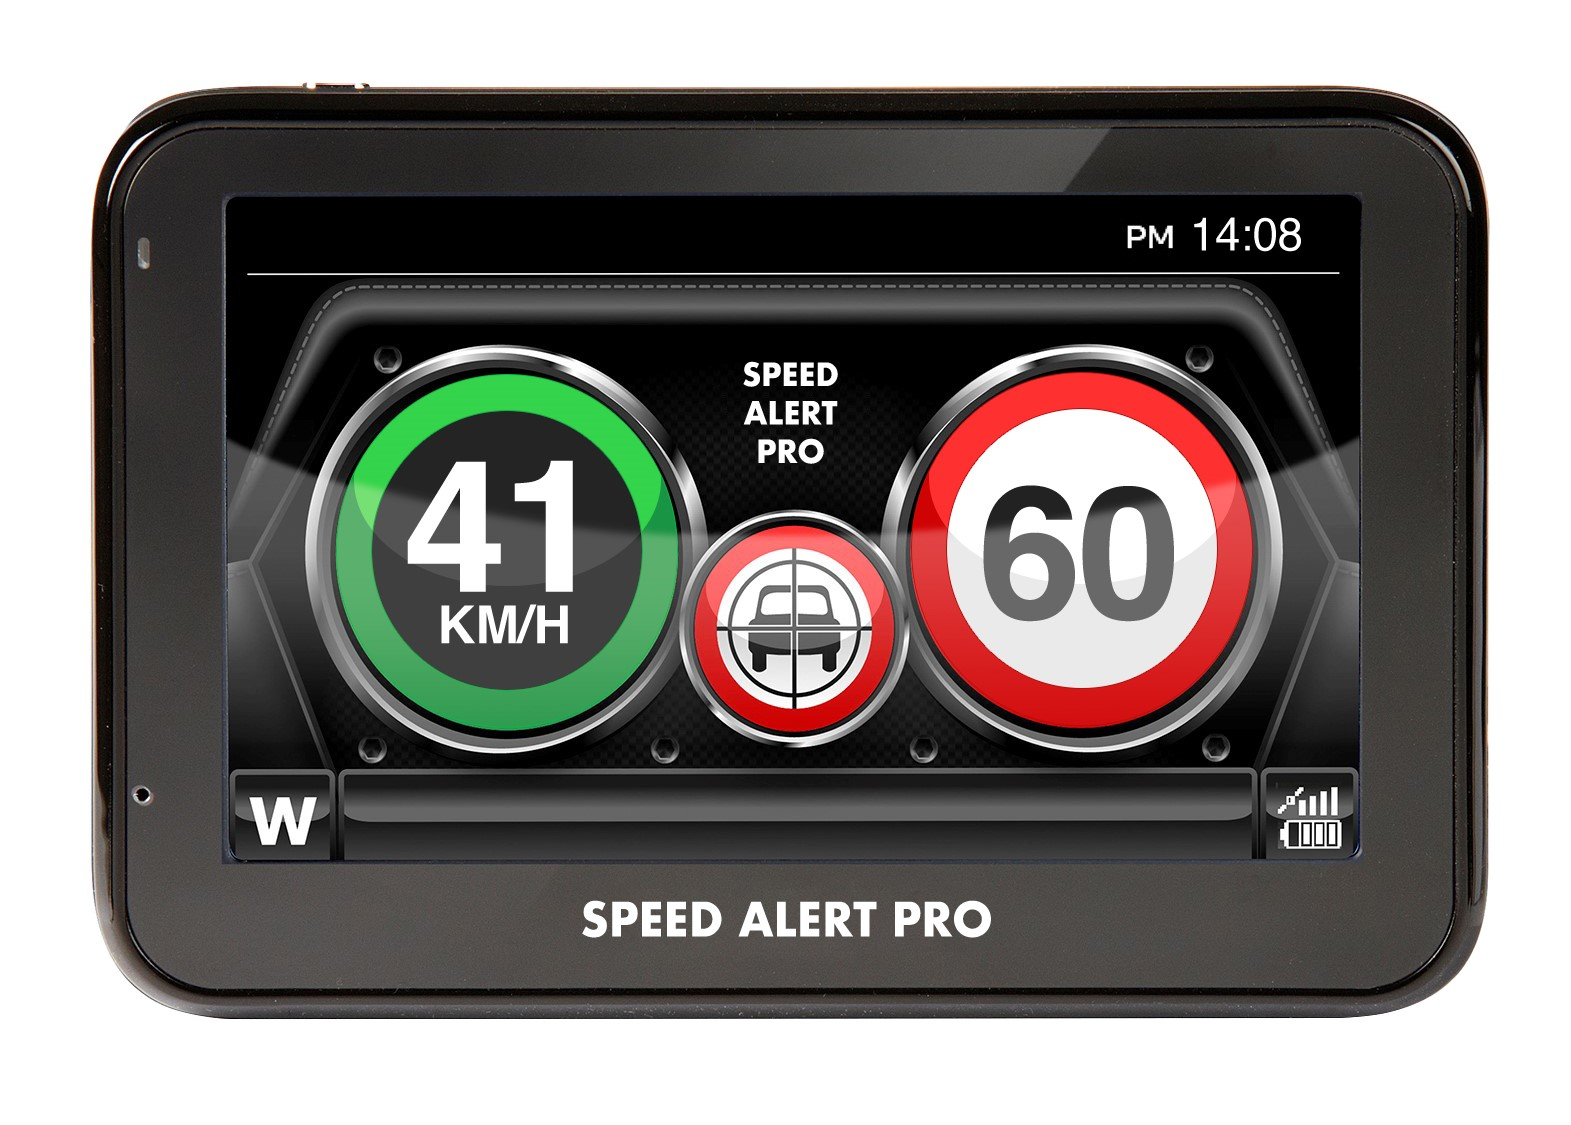 SPEED ALERT PRO MAKES IT EASY TO STAY WITHIN CORRECT SPEED LIMIT